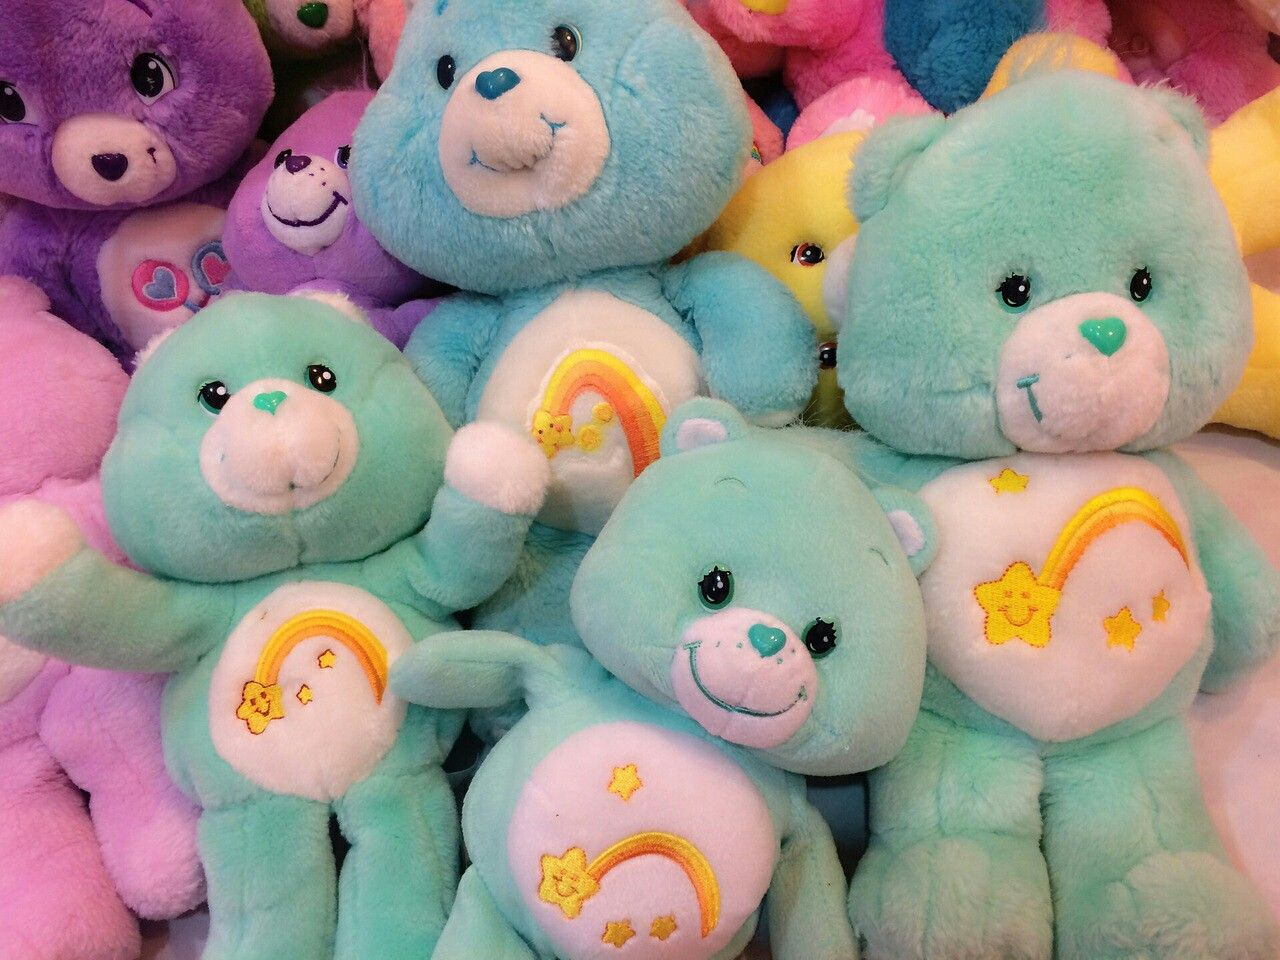 Aesthetic Names For Stuffed Animals